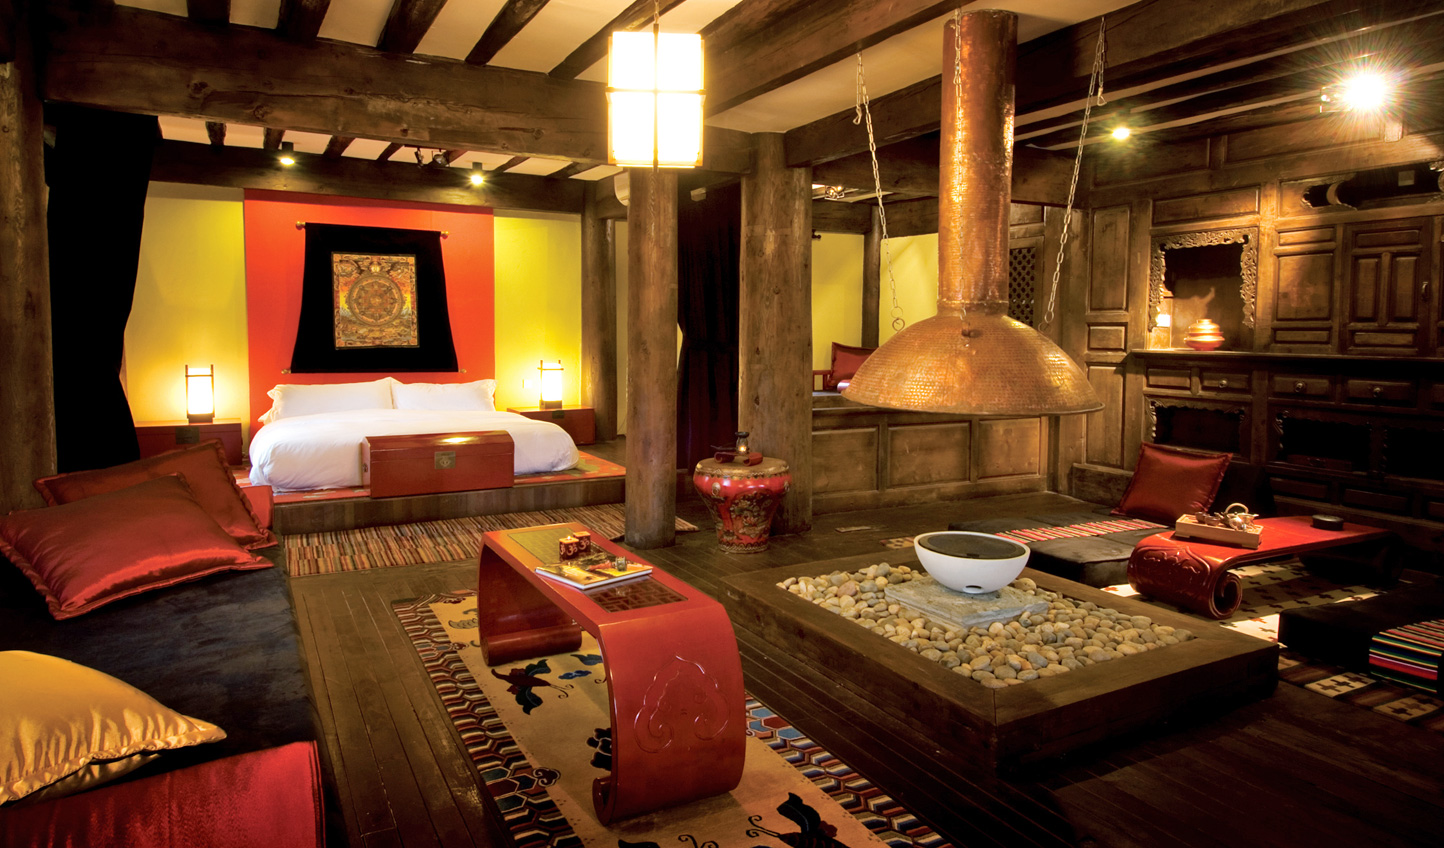 Stay in your very own Tibetan Spa Suite